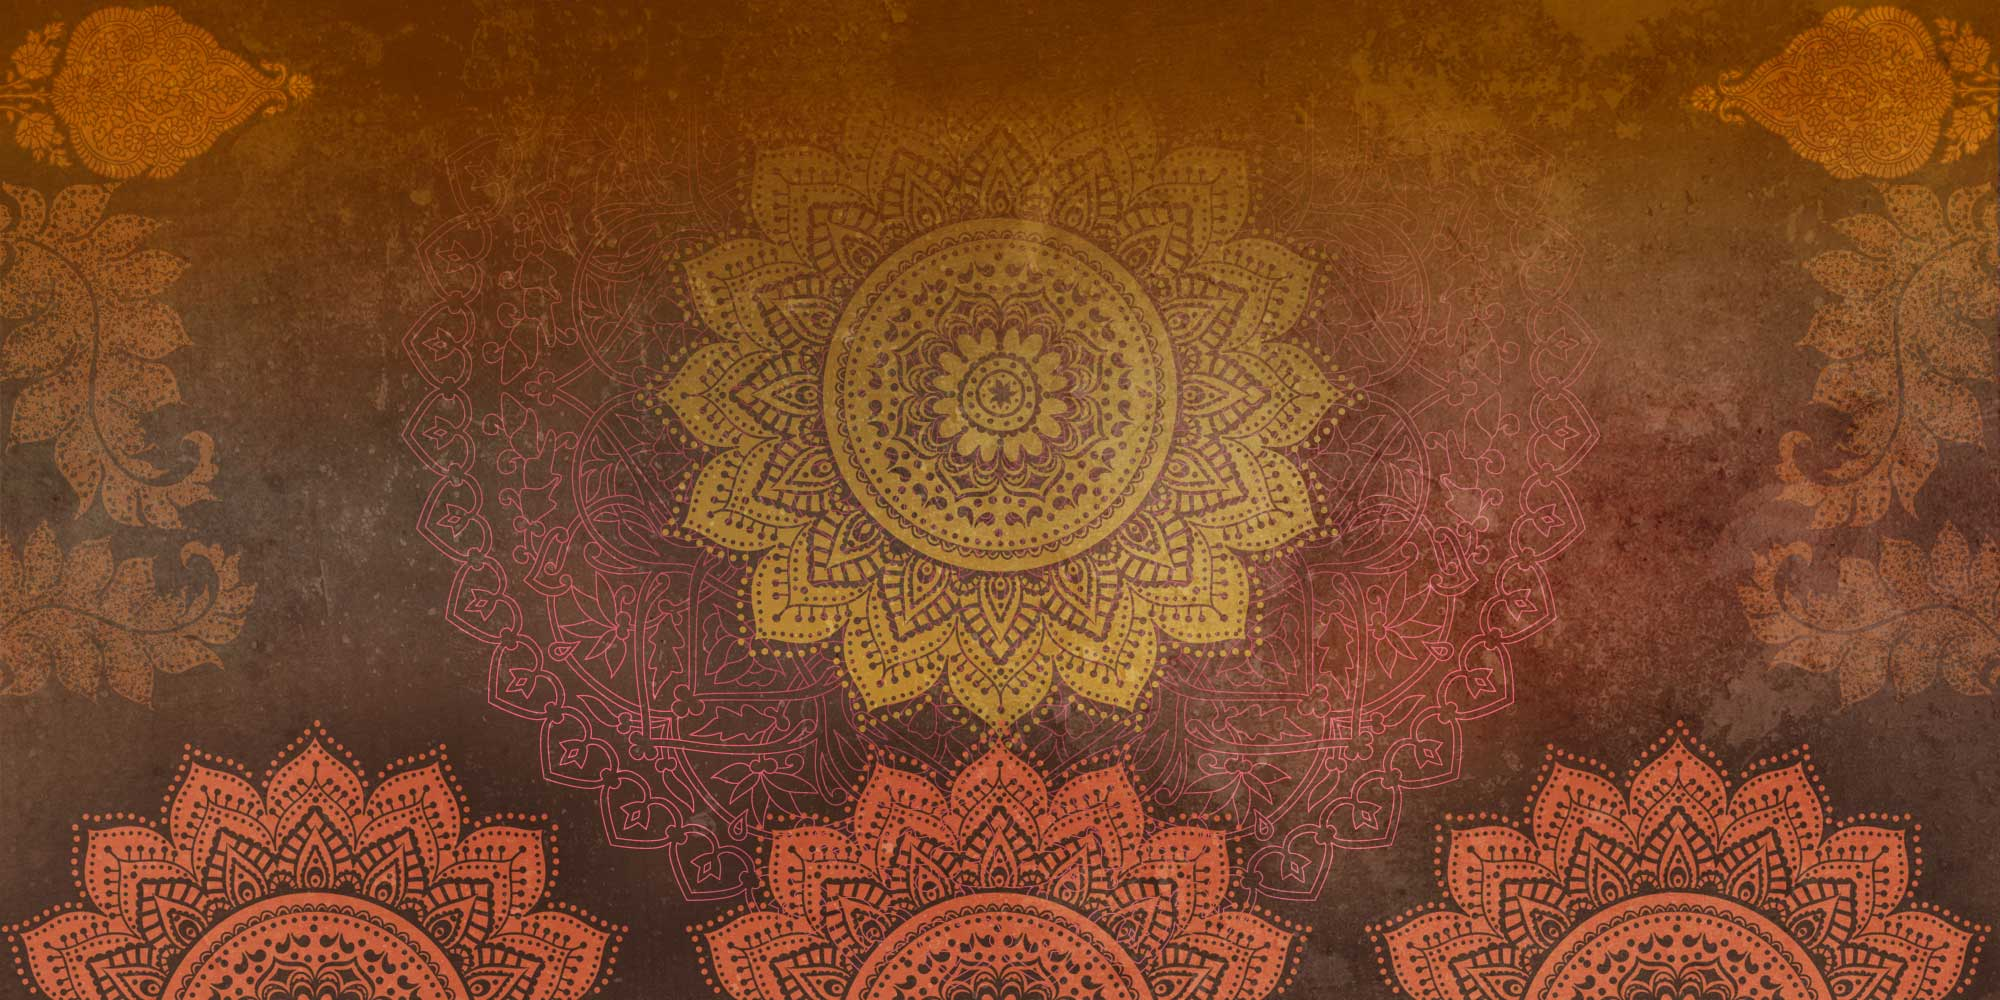 Wallpapers from india wallpapersafari for Wallpaper home india